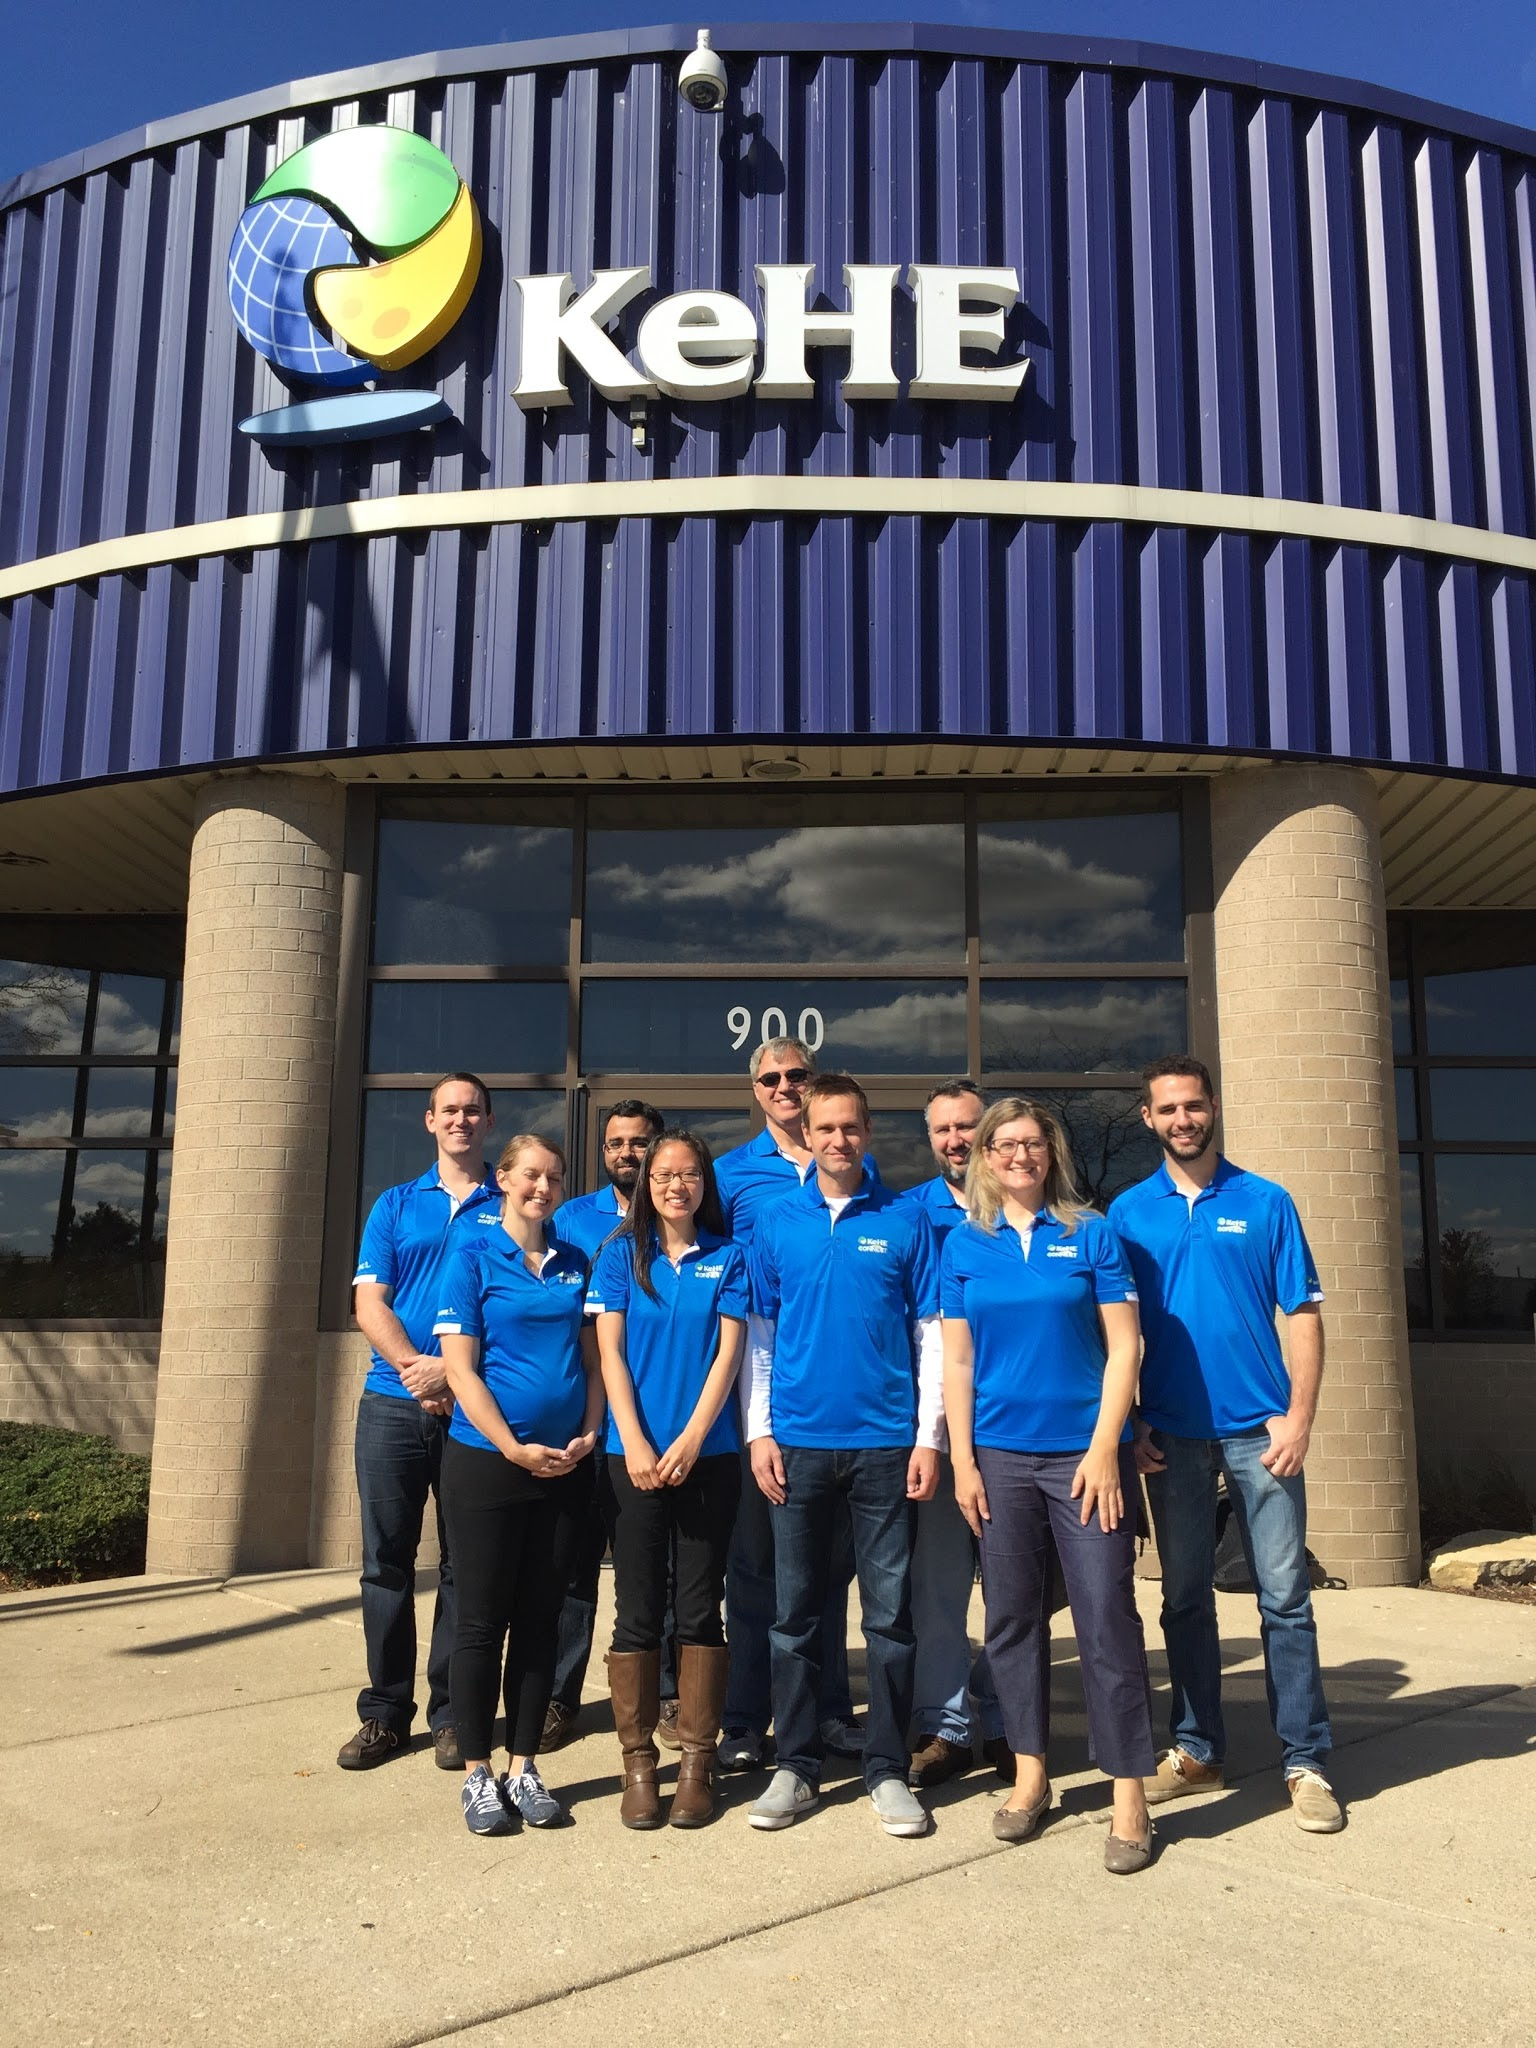 Dressed in our KeHE shirts after a KeHE warehouse tour.